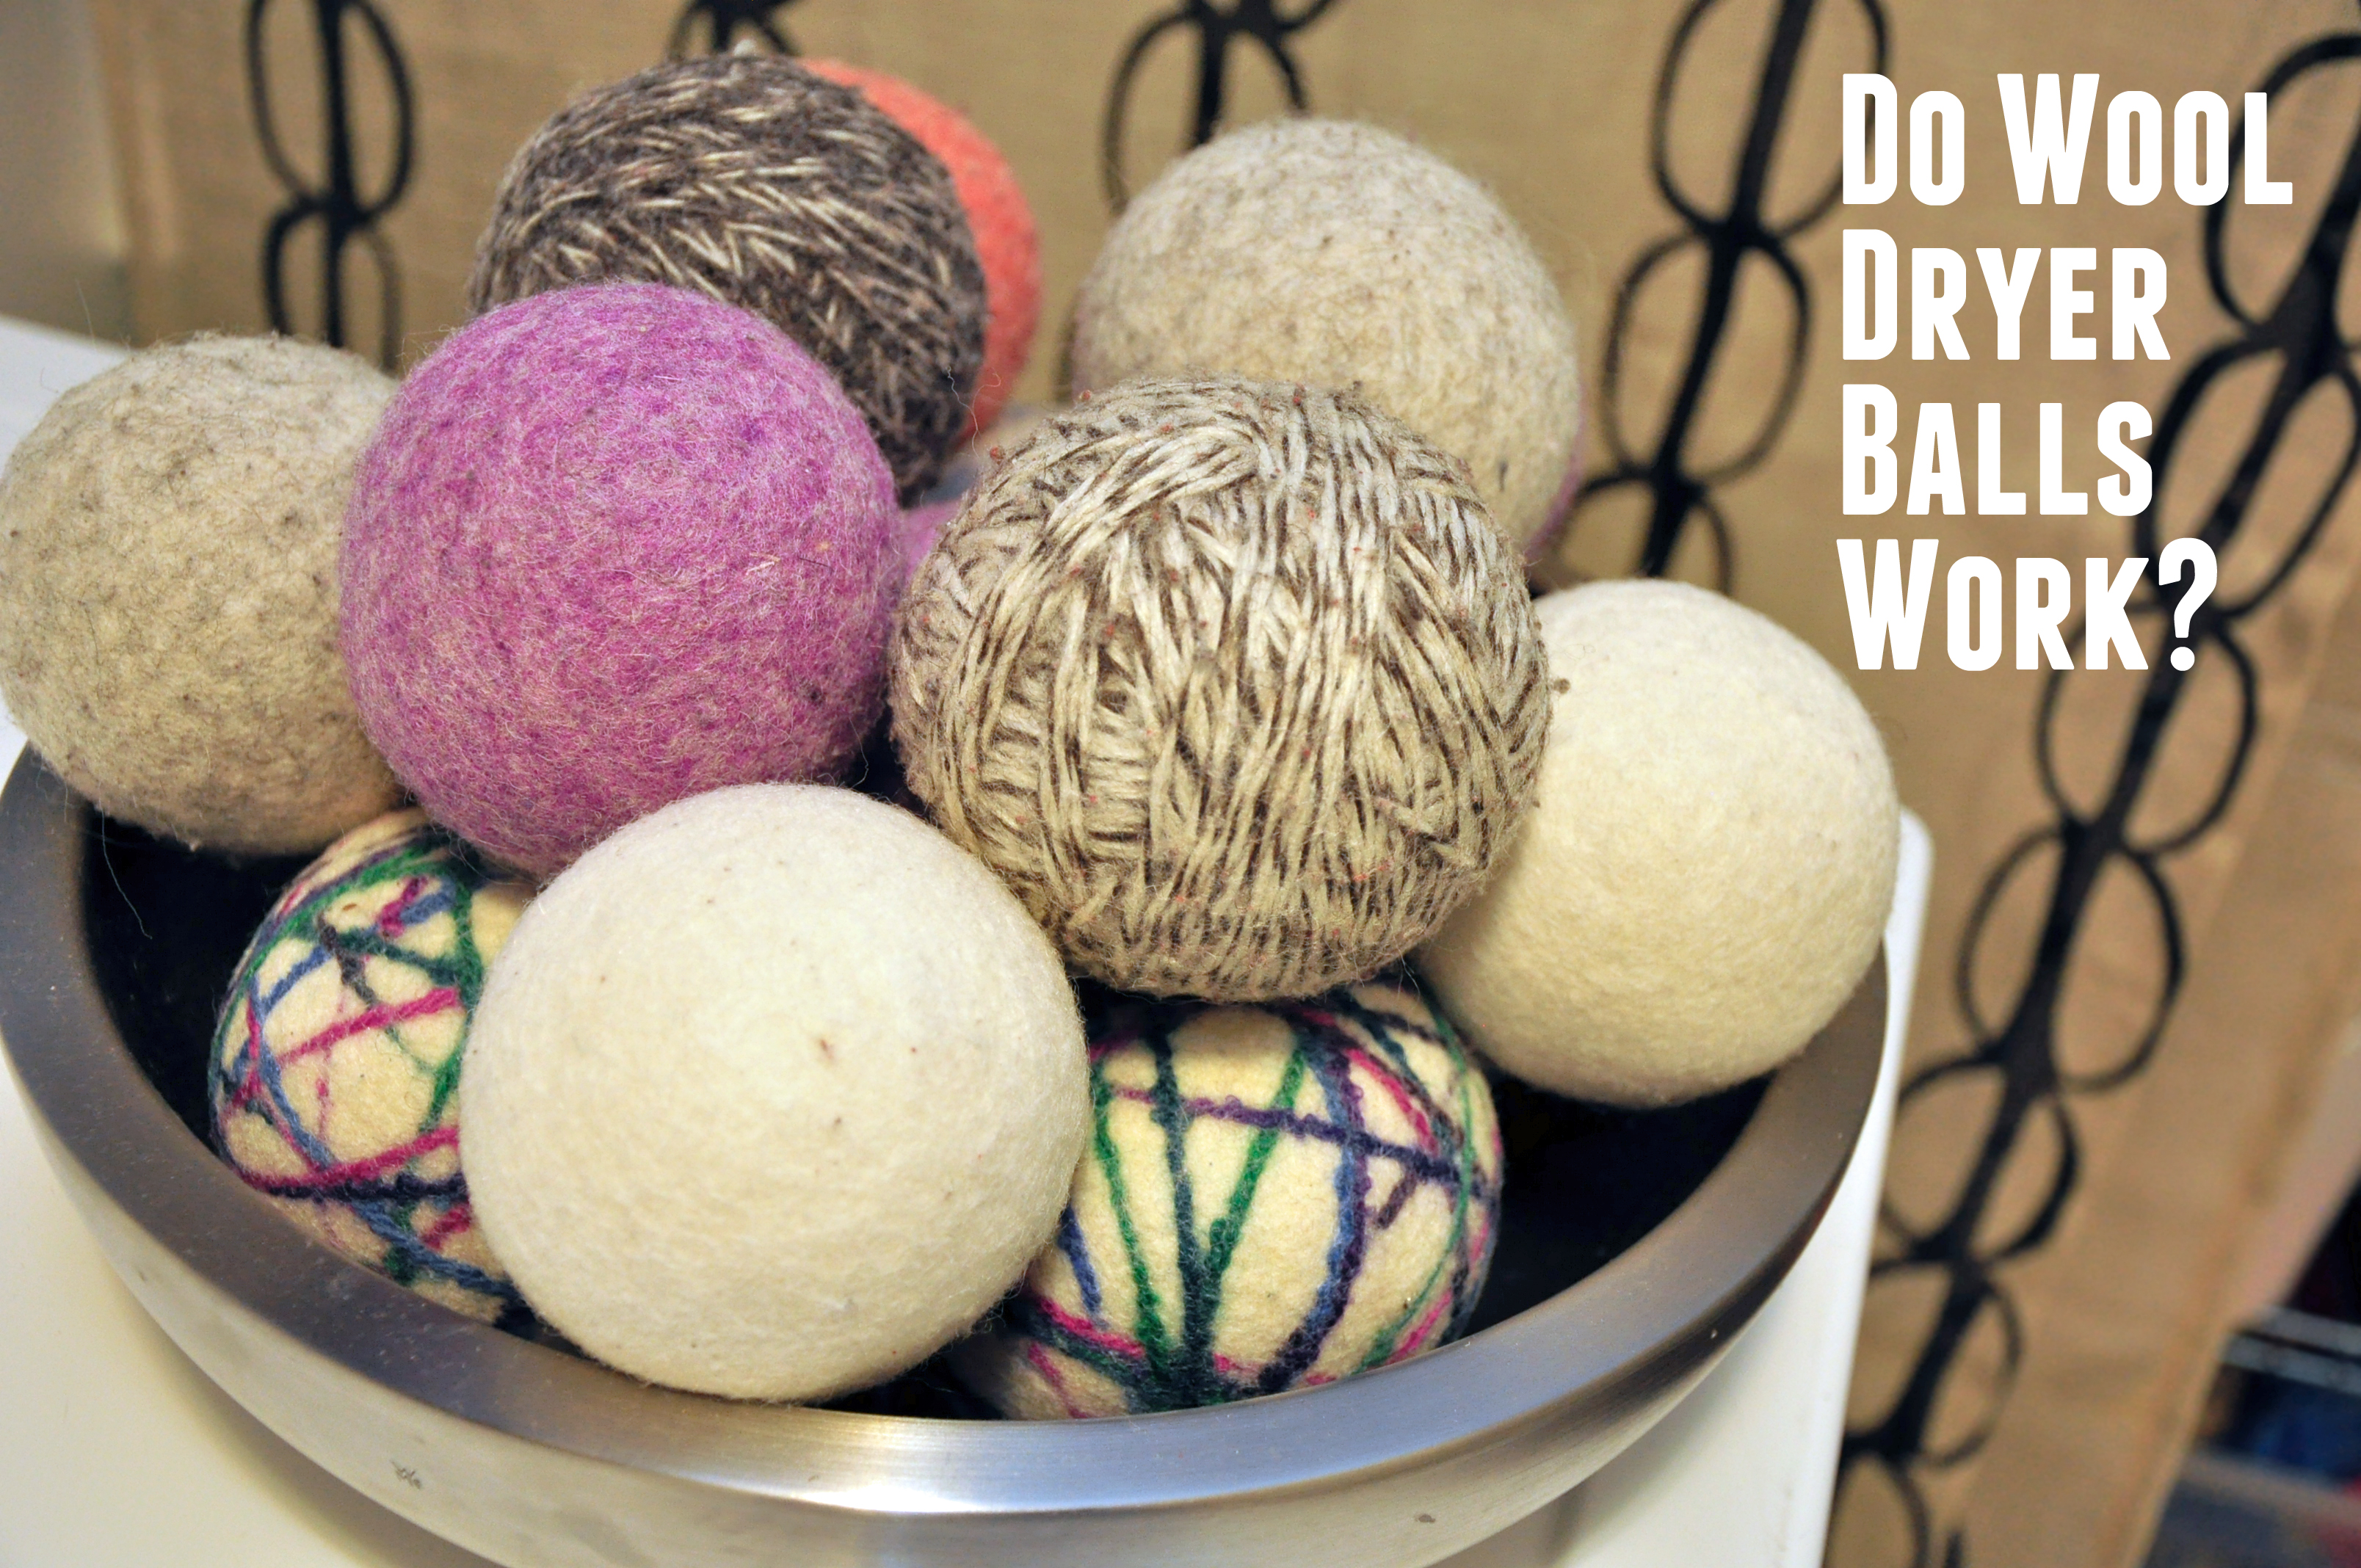 Do wool dryer balls cut down on drying time?